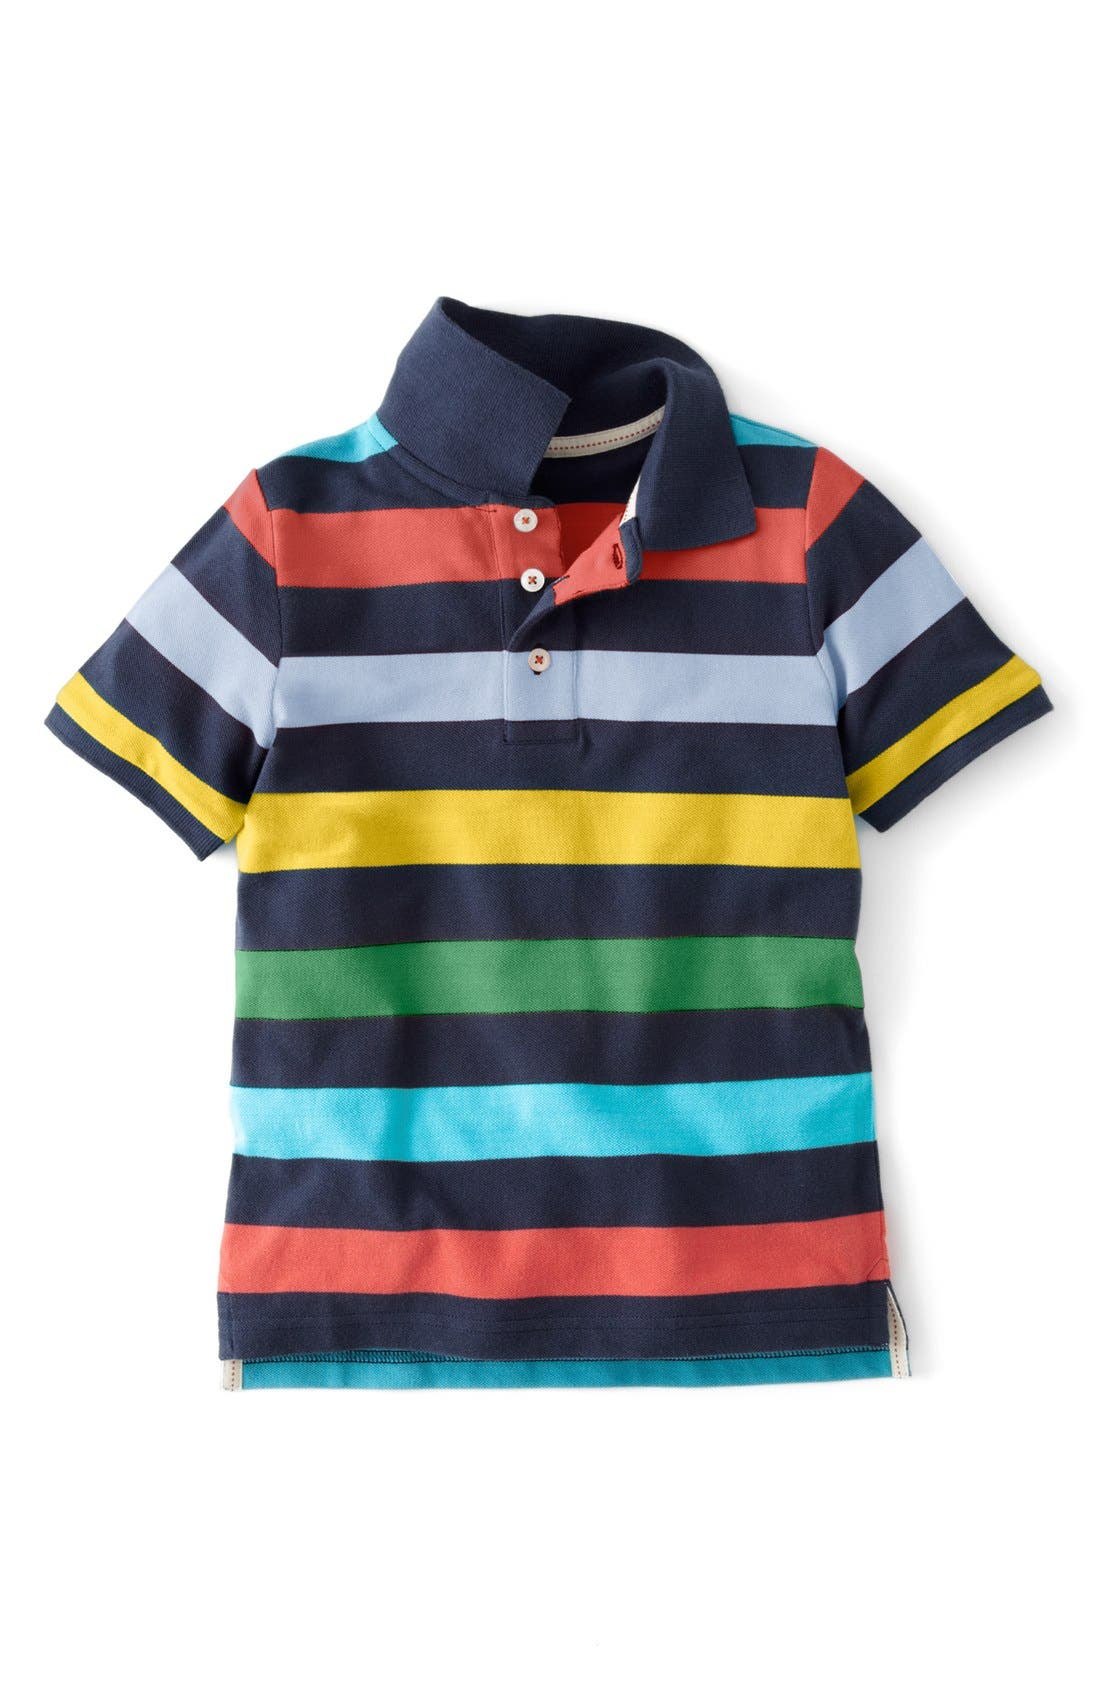 Alternate Image 1 Selected - Mini Boden Pique Polo (Toddler Boys, Little Boys & Big Boys)